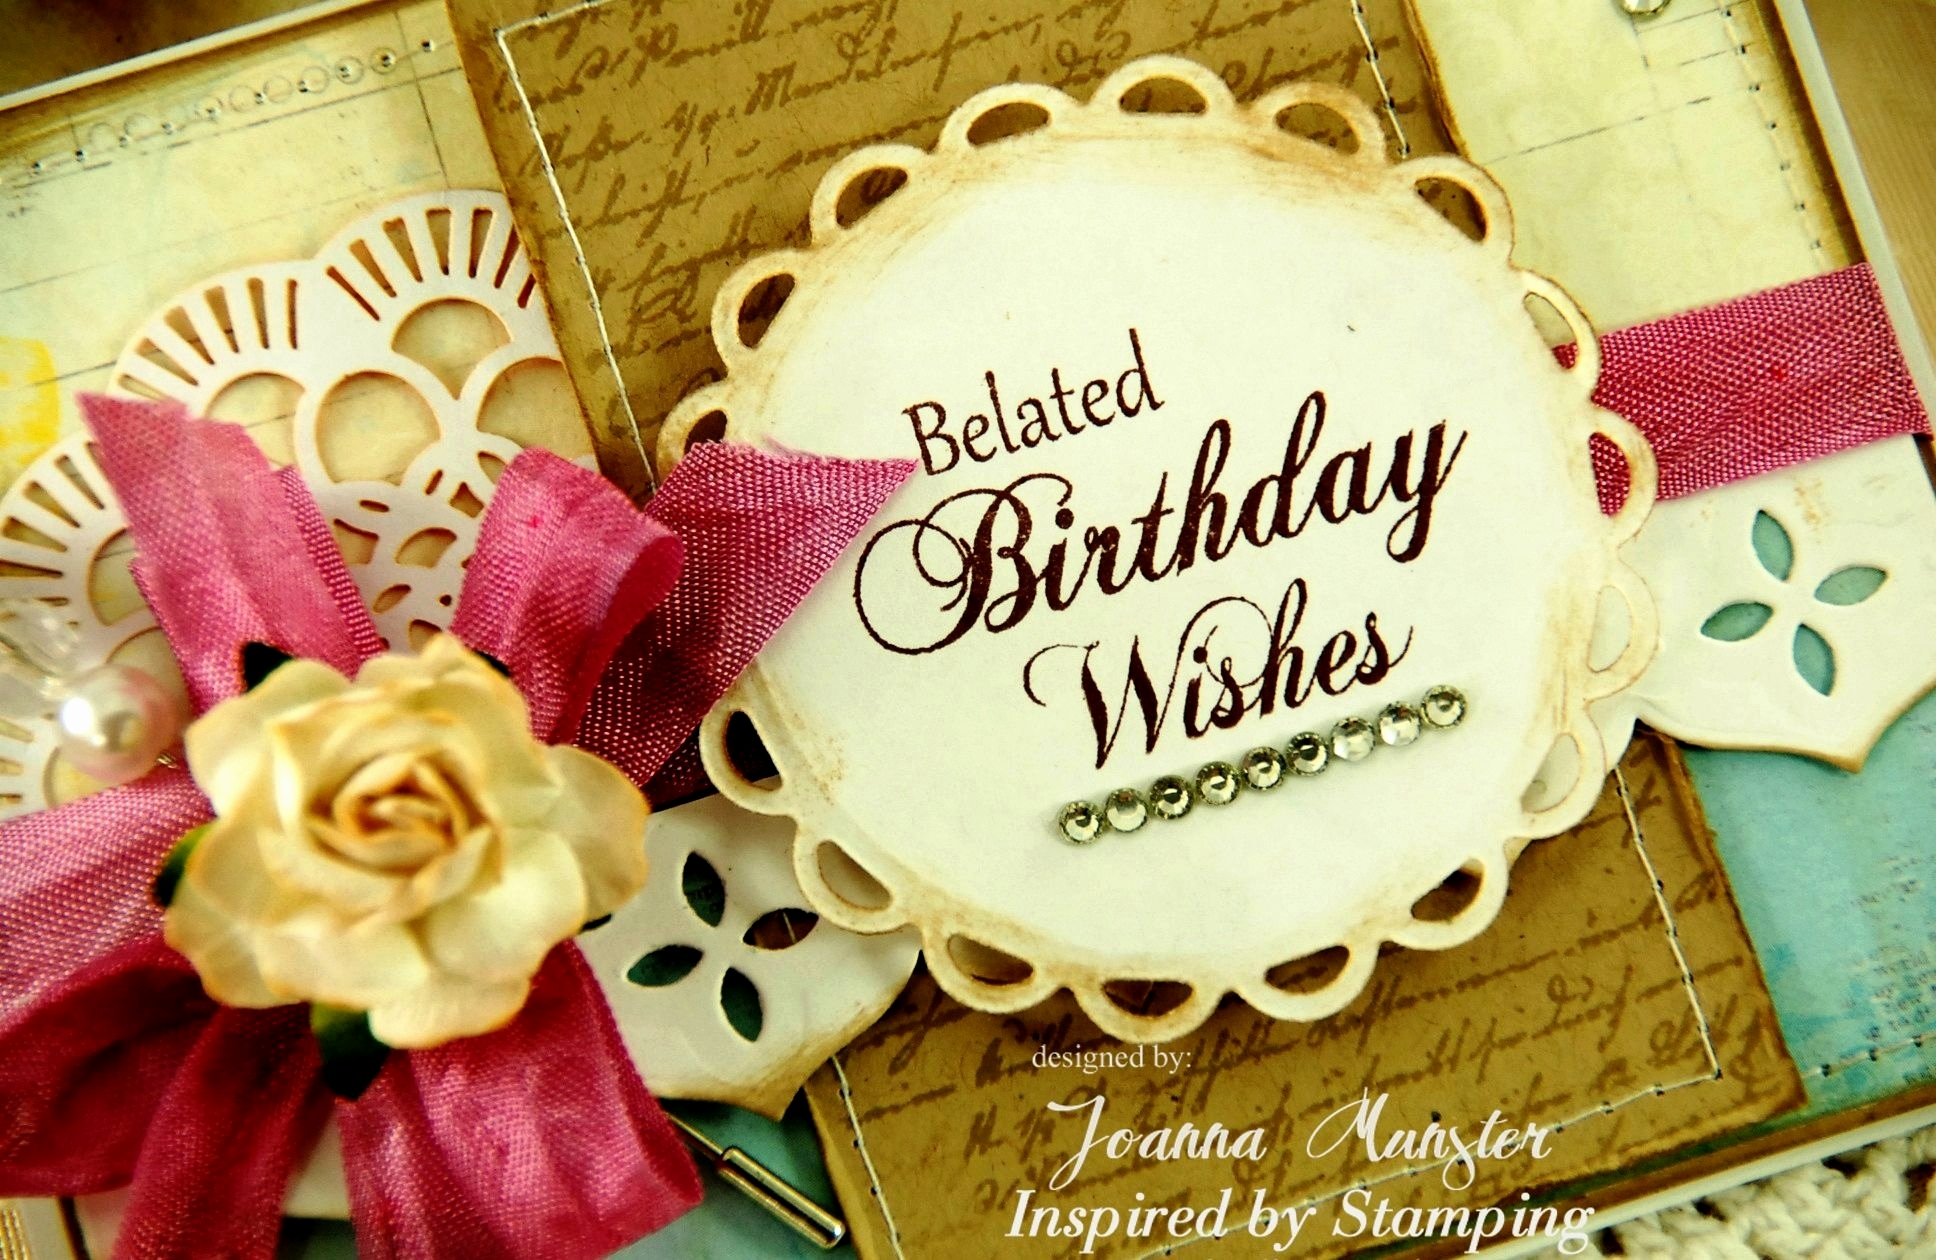 belated happy birthday cards ; 123greetings-com-belated-happy-birthday-cards-luxury-belated-happy-birthday-wishes-to-brother-awesome-belated-happy-of-123greetings-com-belated-happy-birthday-cards